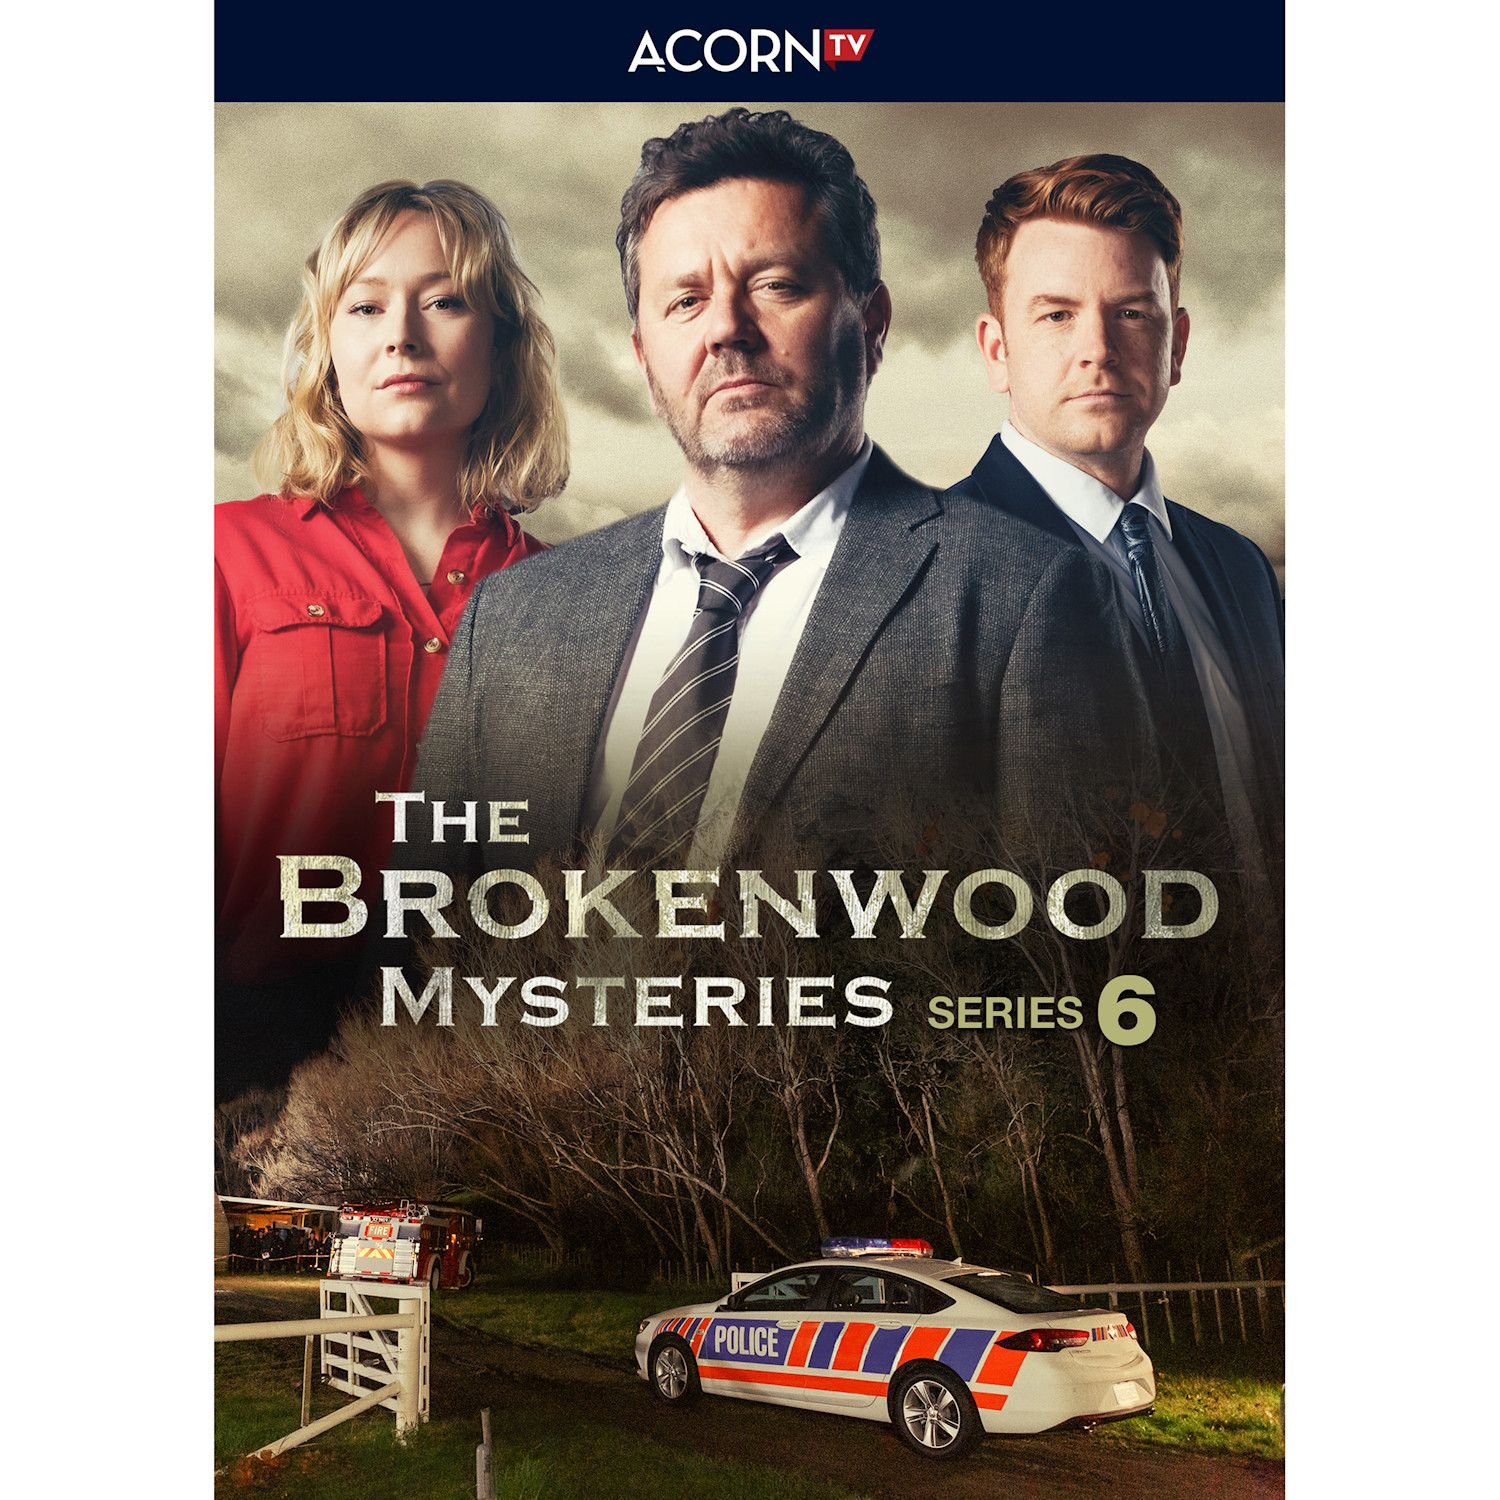 Brokenwood Mysteries: Series 6 Blu-ray & Dvd - Blu Ray